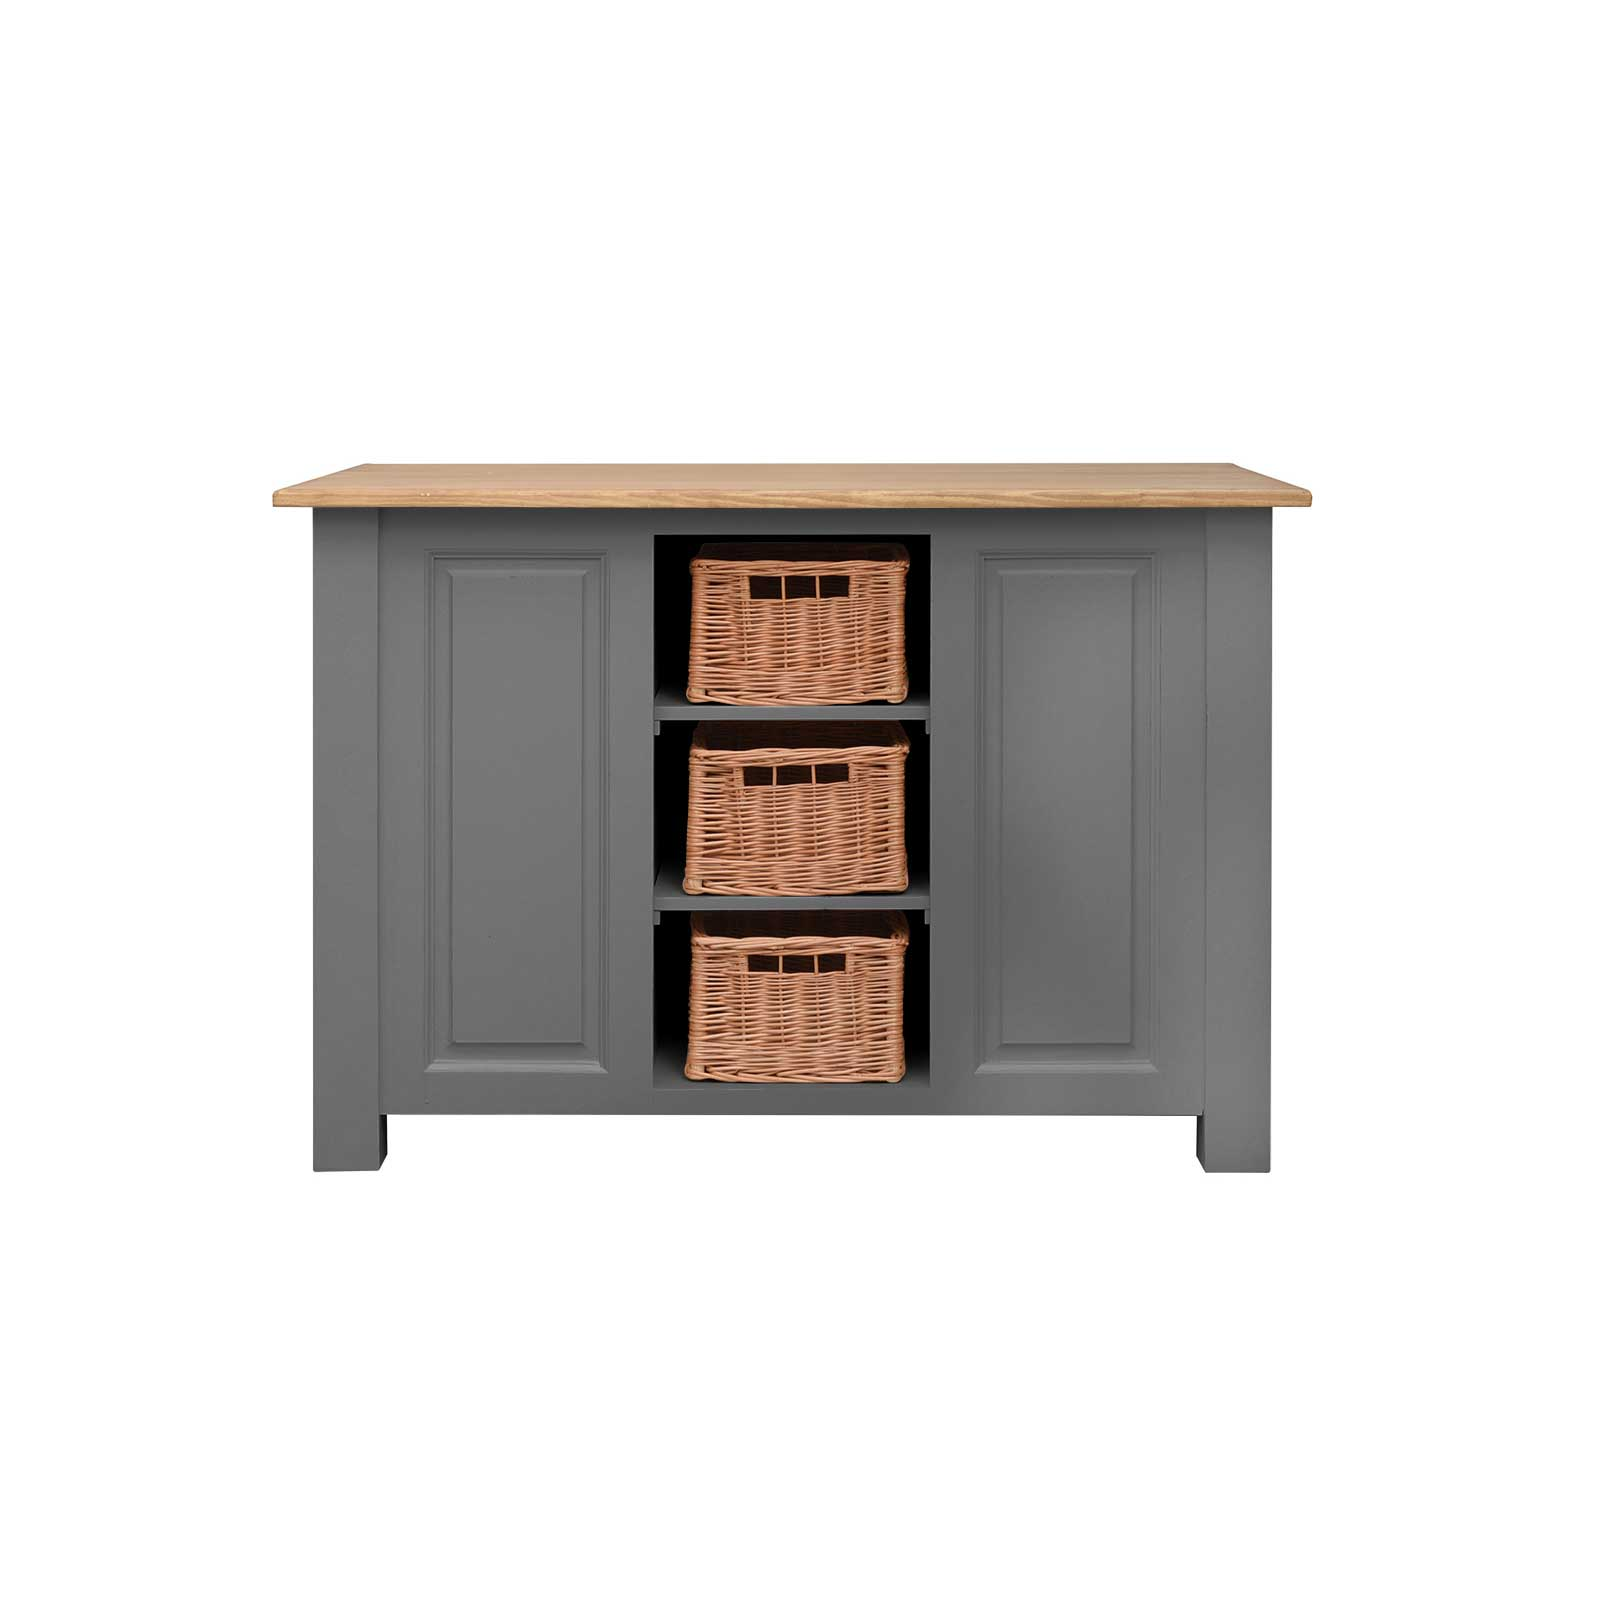 Soho Dark Grey Painted Kitchen Island with Wine Rack_2